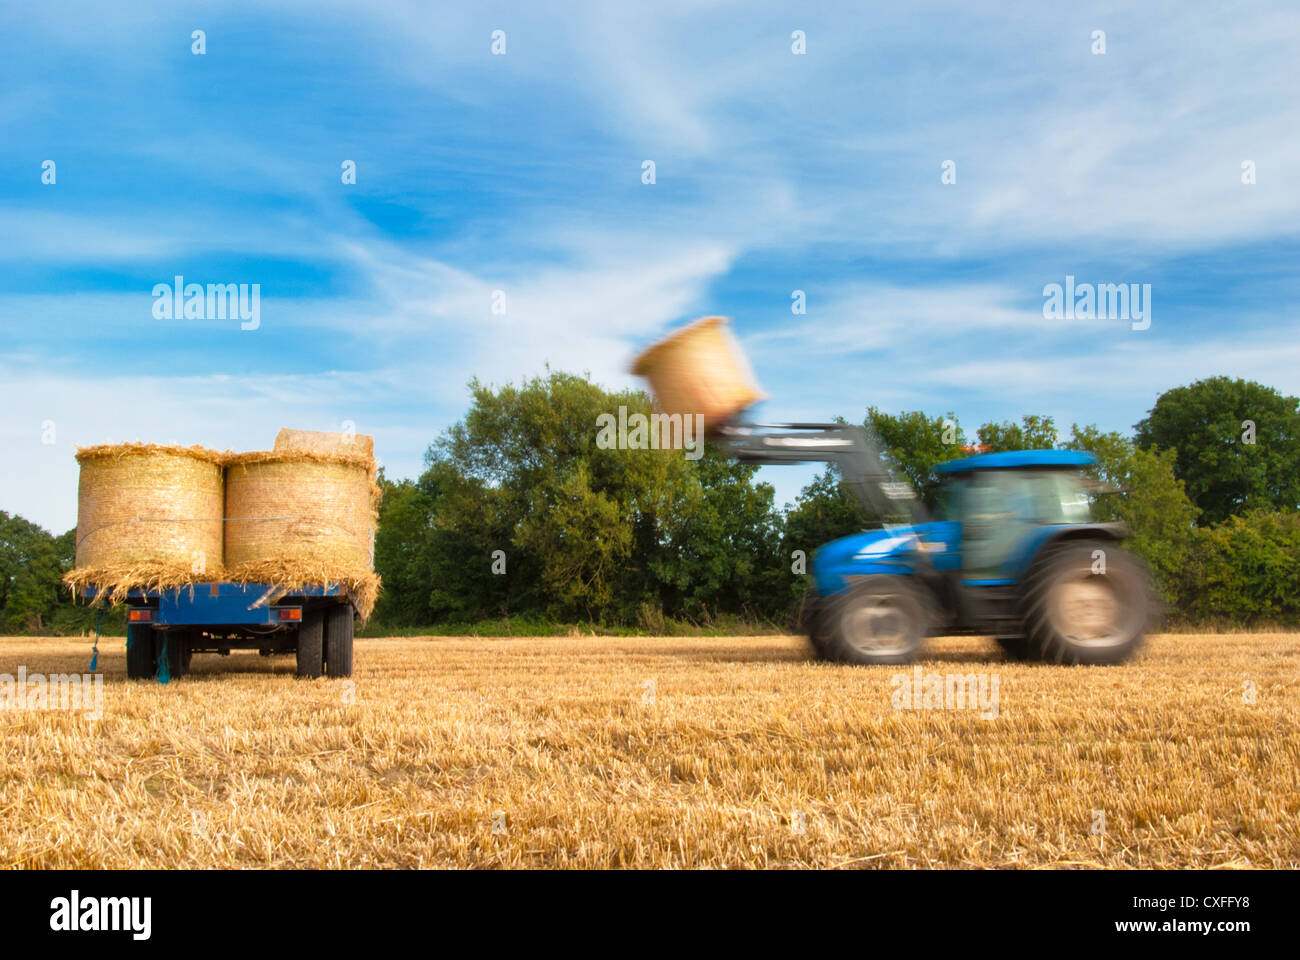 Make hay while the sun shines. A tractor works fast to collect the hay bales. - Stock Image